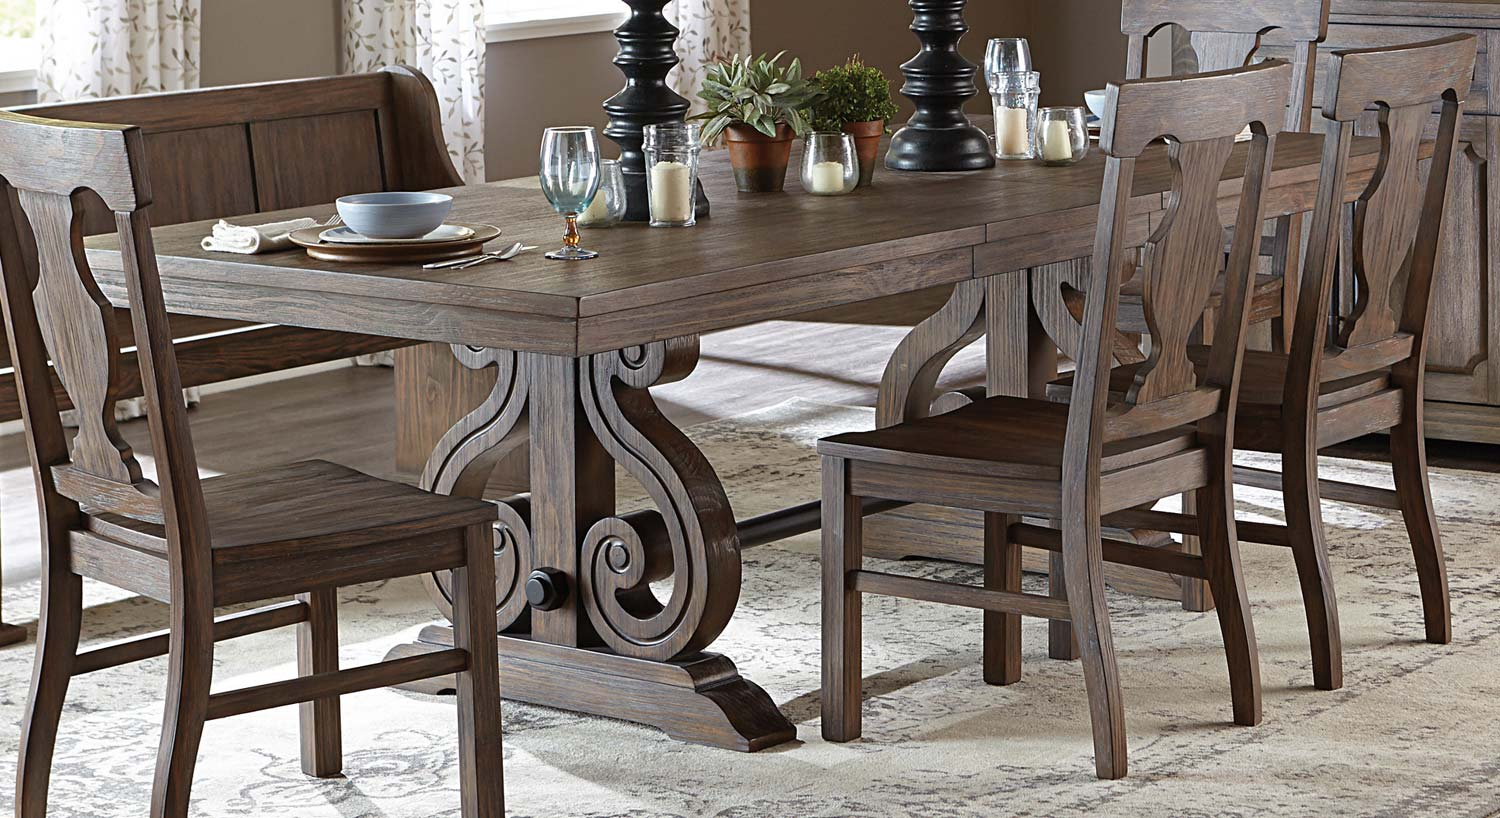 Homelegance Toulon Trestle Dining Table Wire Brushed